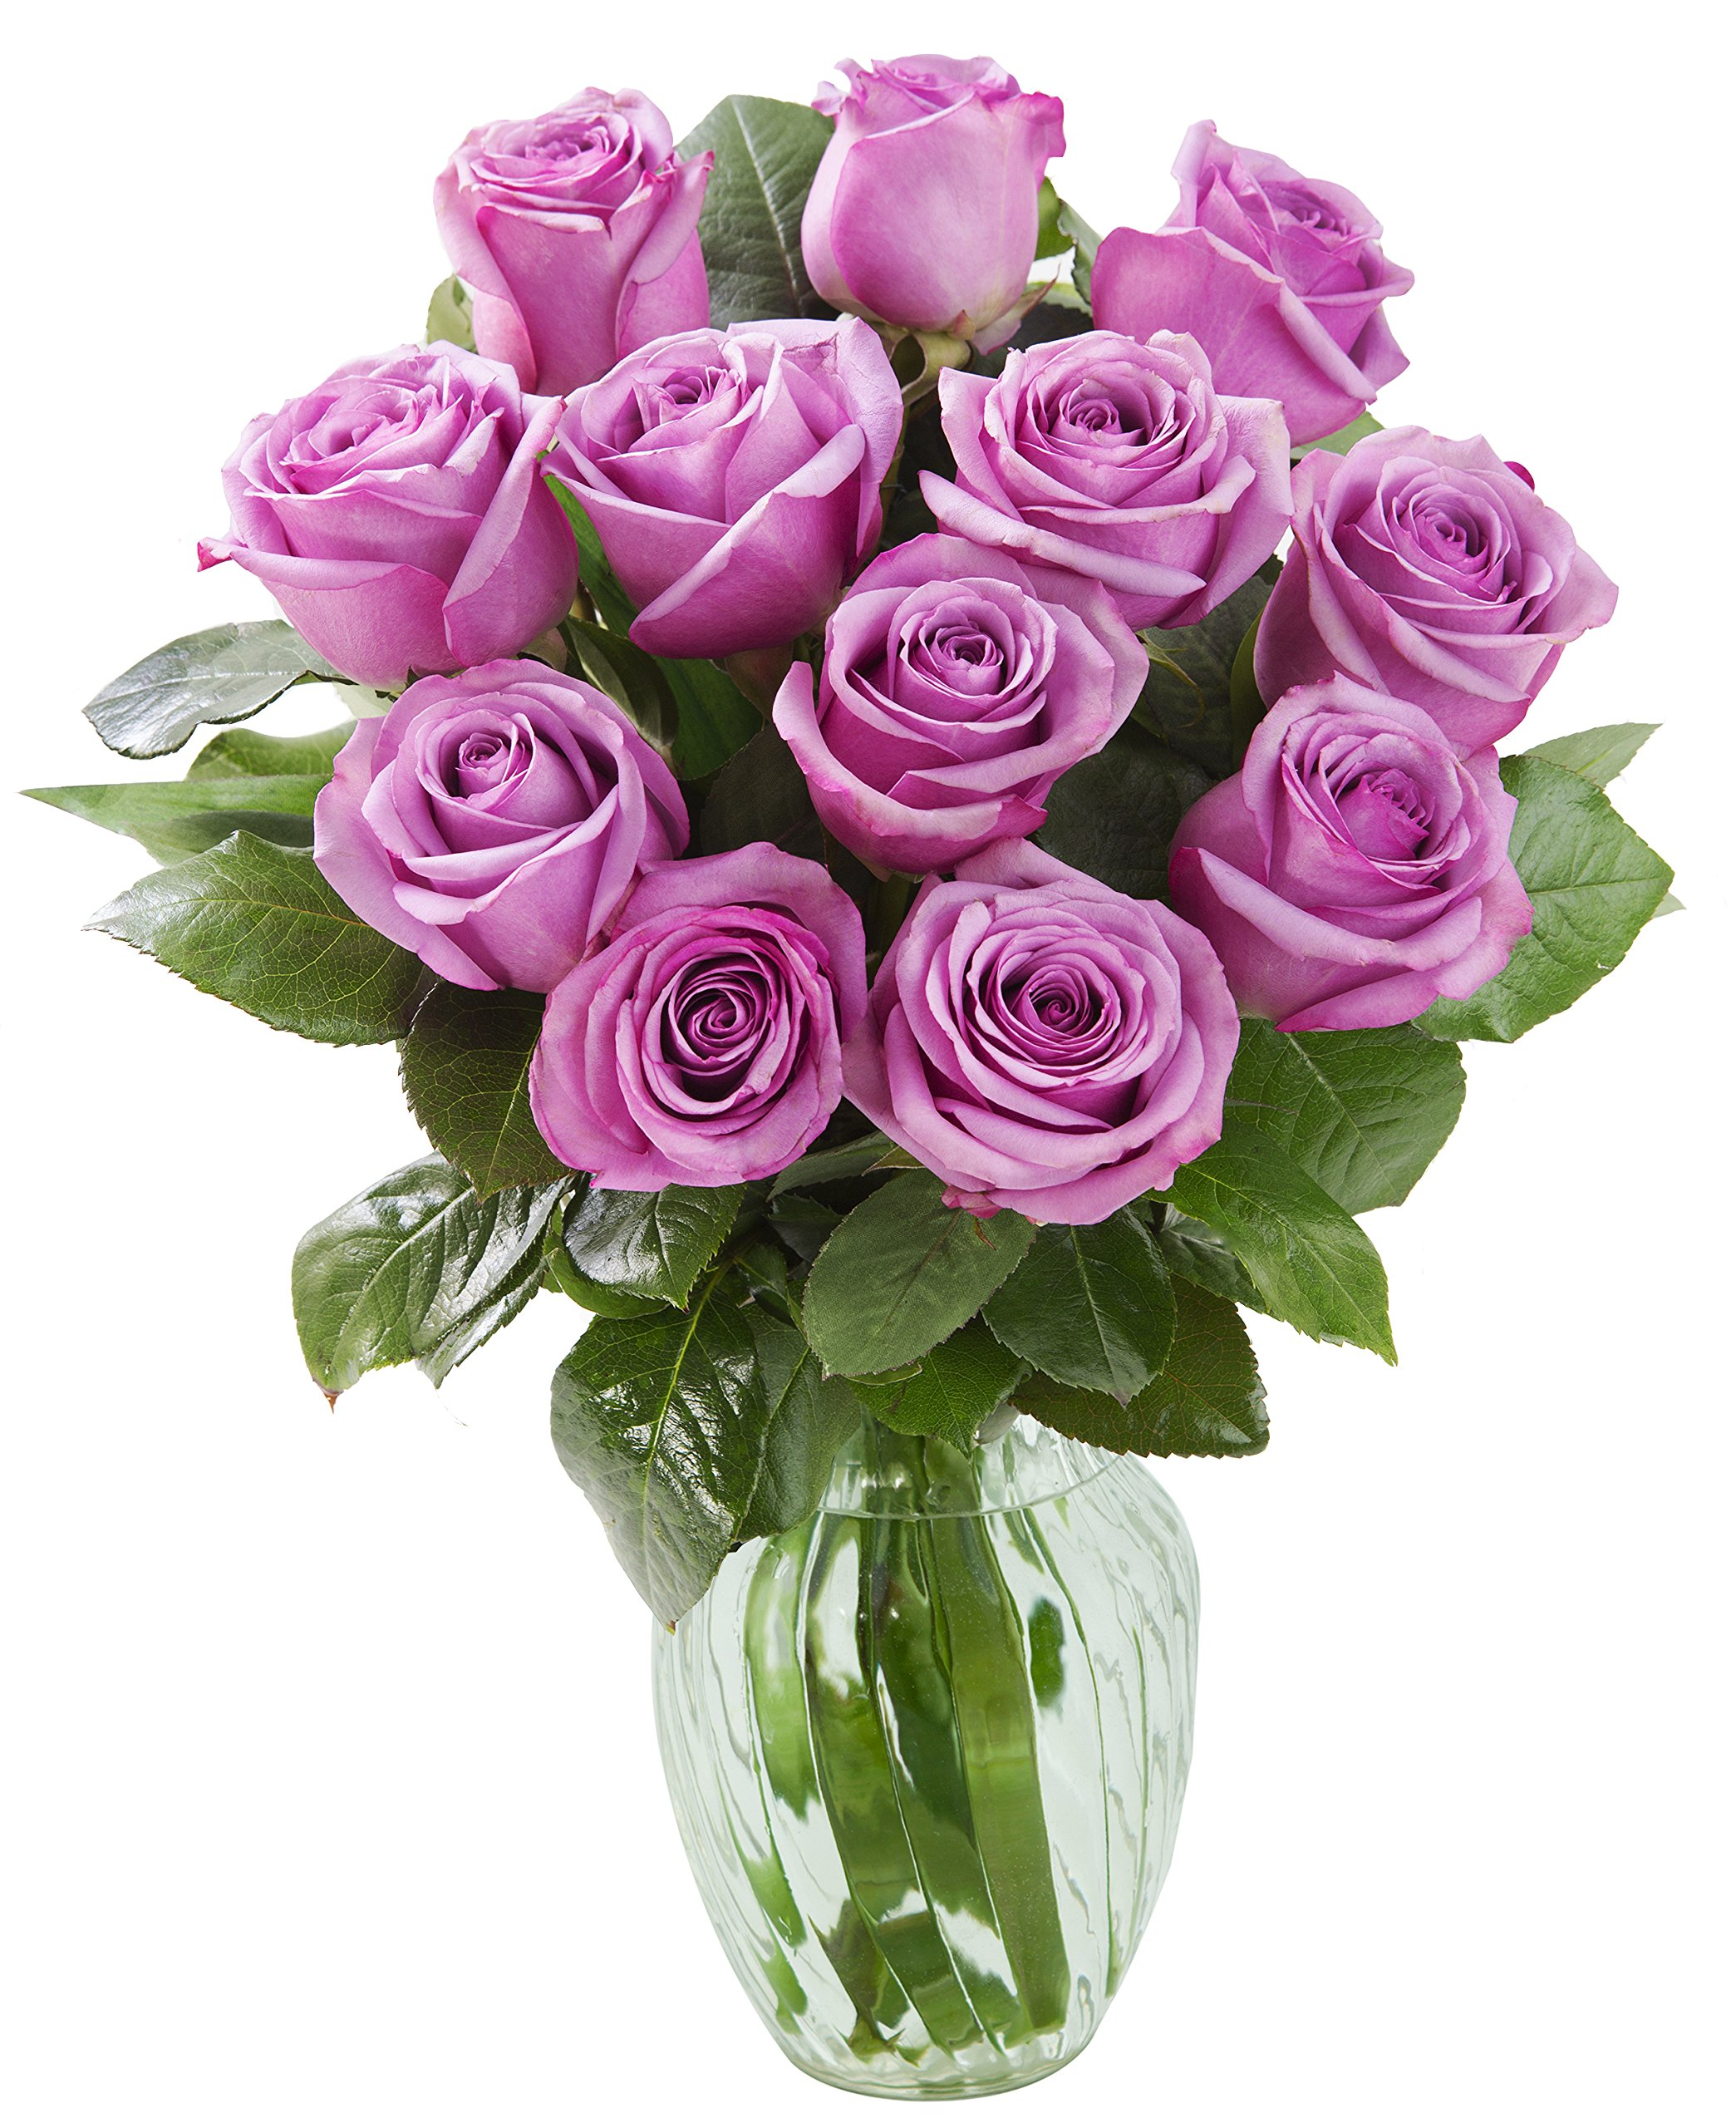 Cheap Beautiful Fresh Roses Find Beautiful Fresh Roses Deals On